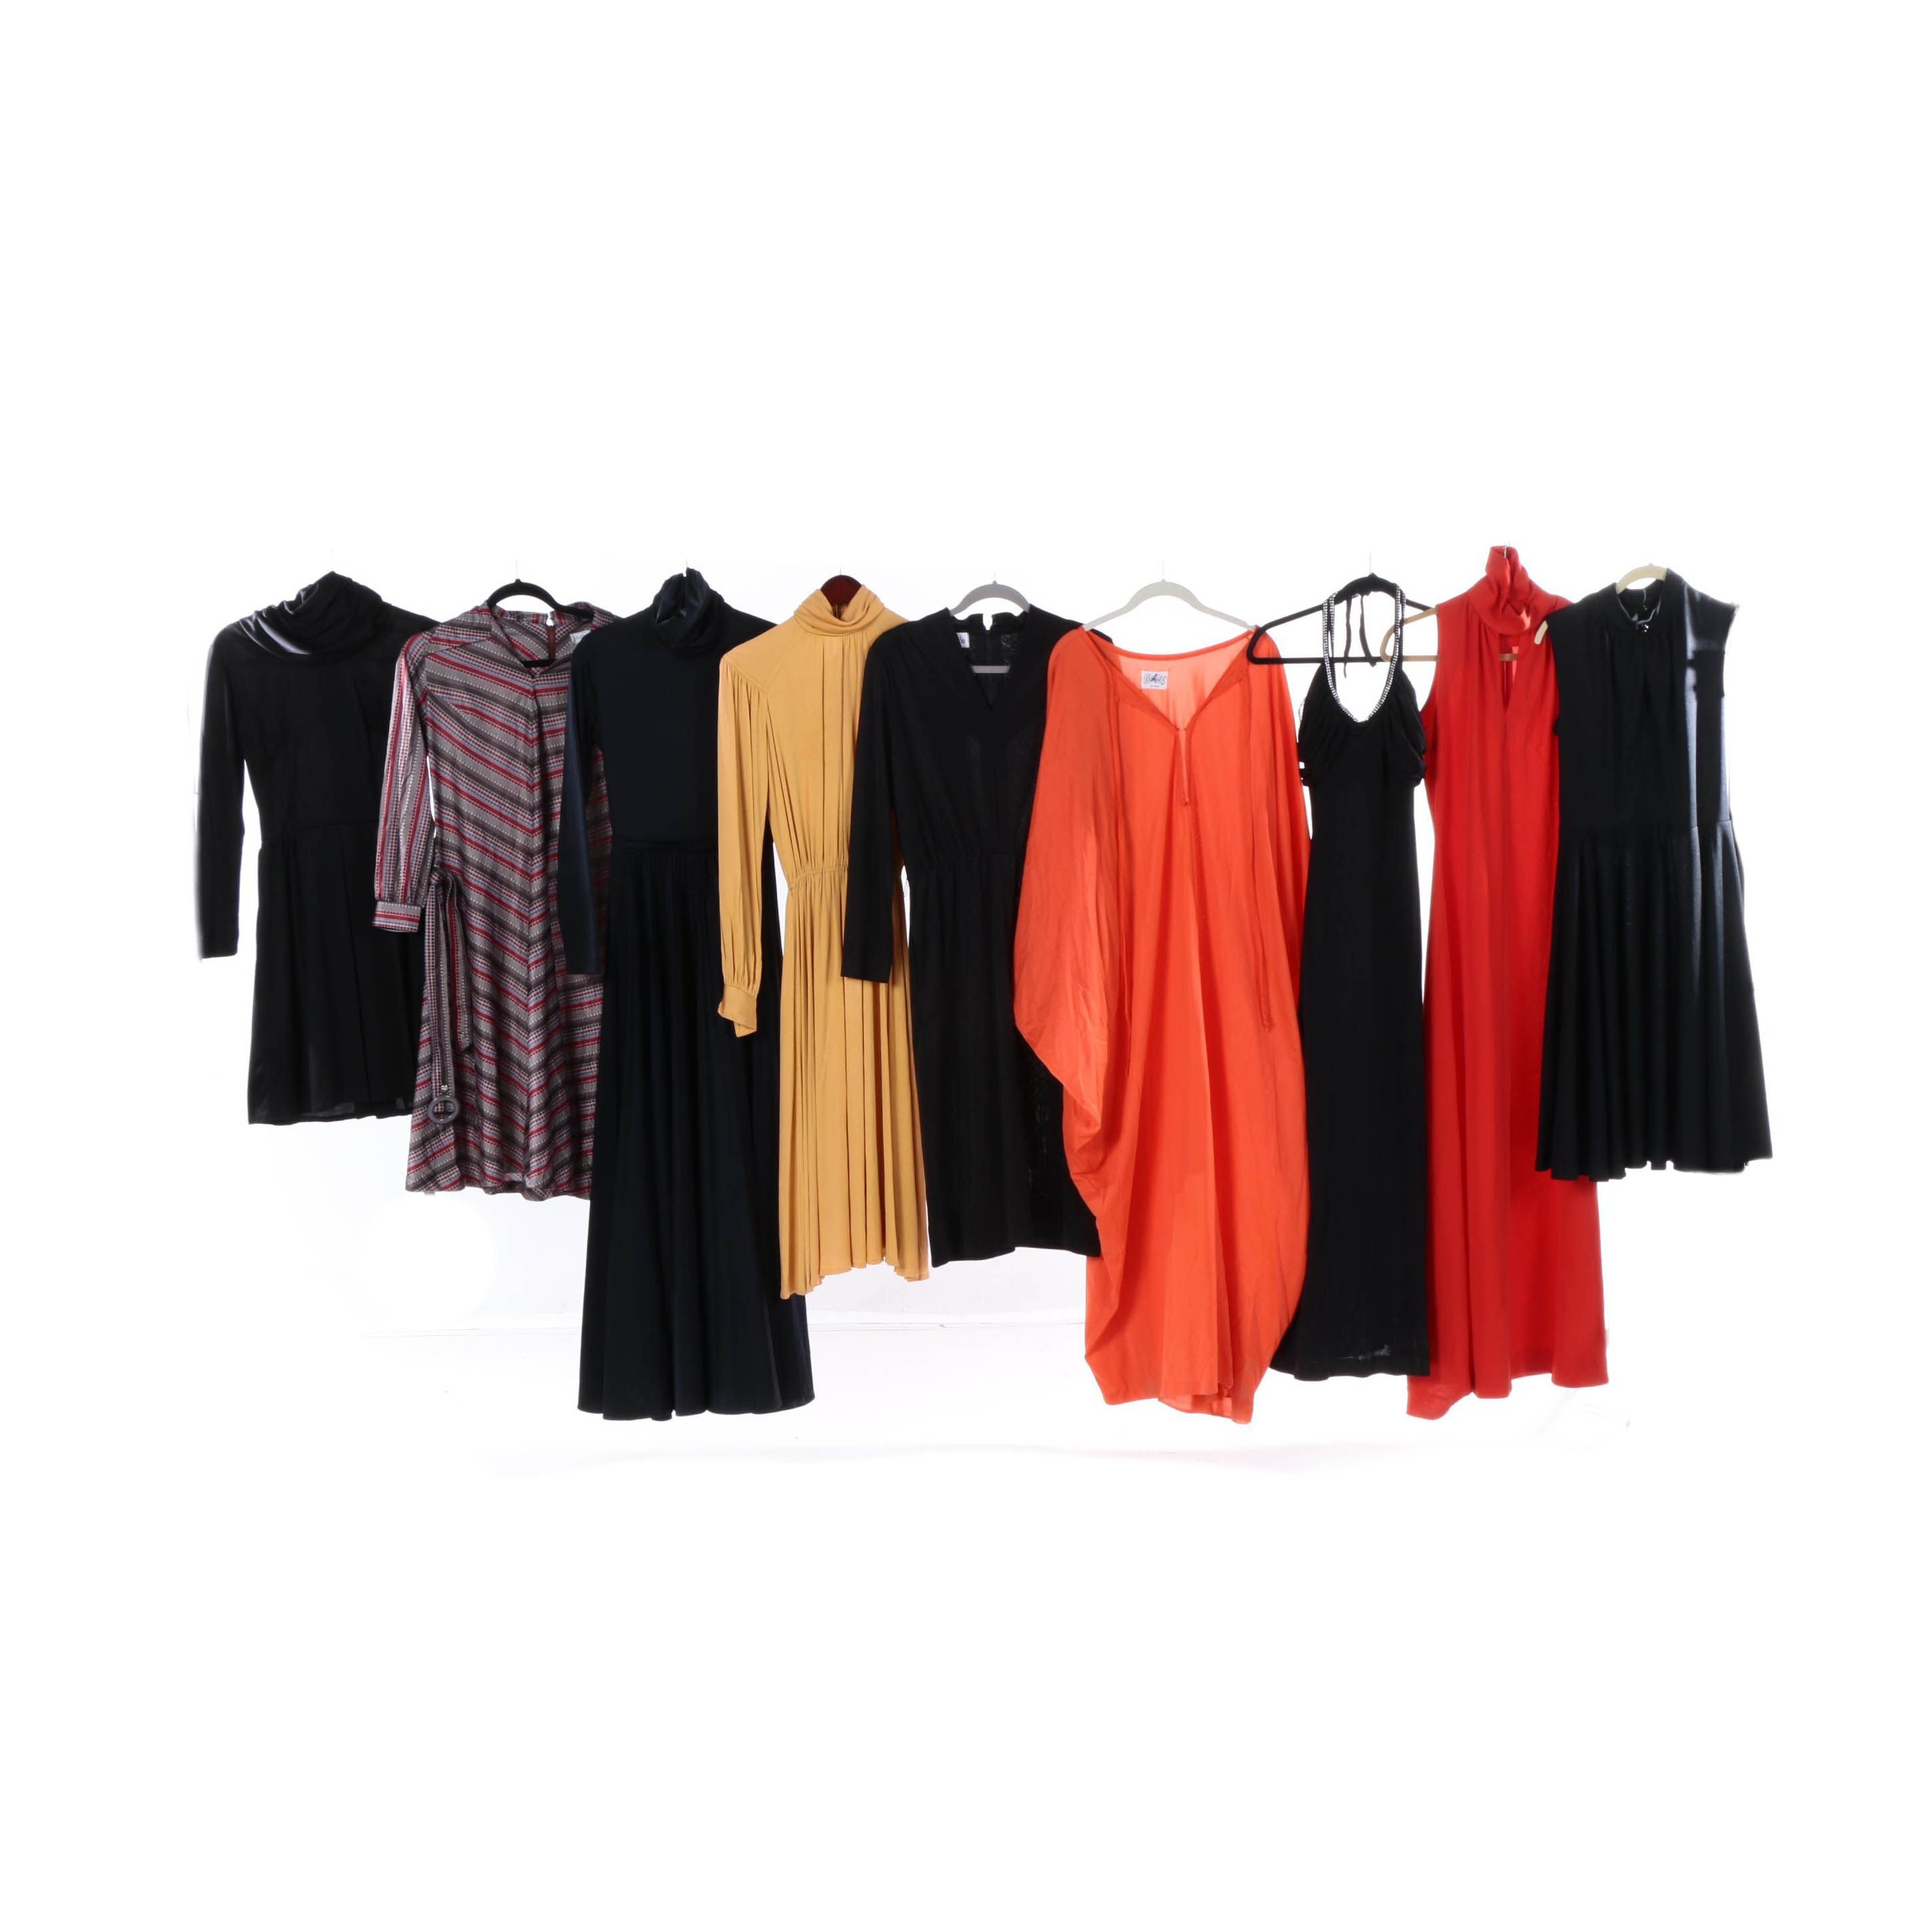 1970s Vintage Knit Maxi and Midi Dresses Including Scott Barrie and Sakowitz